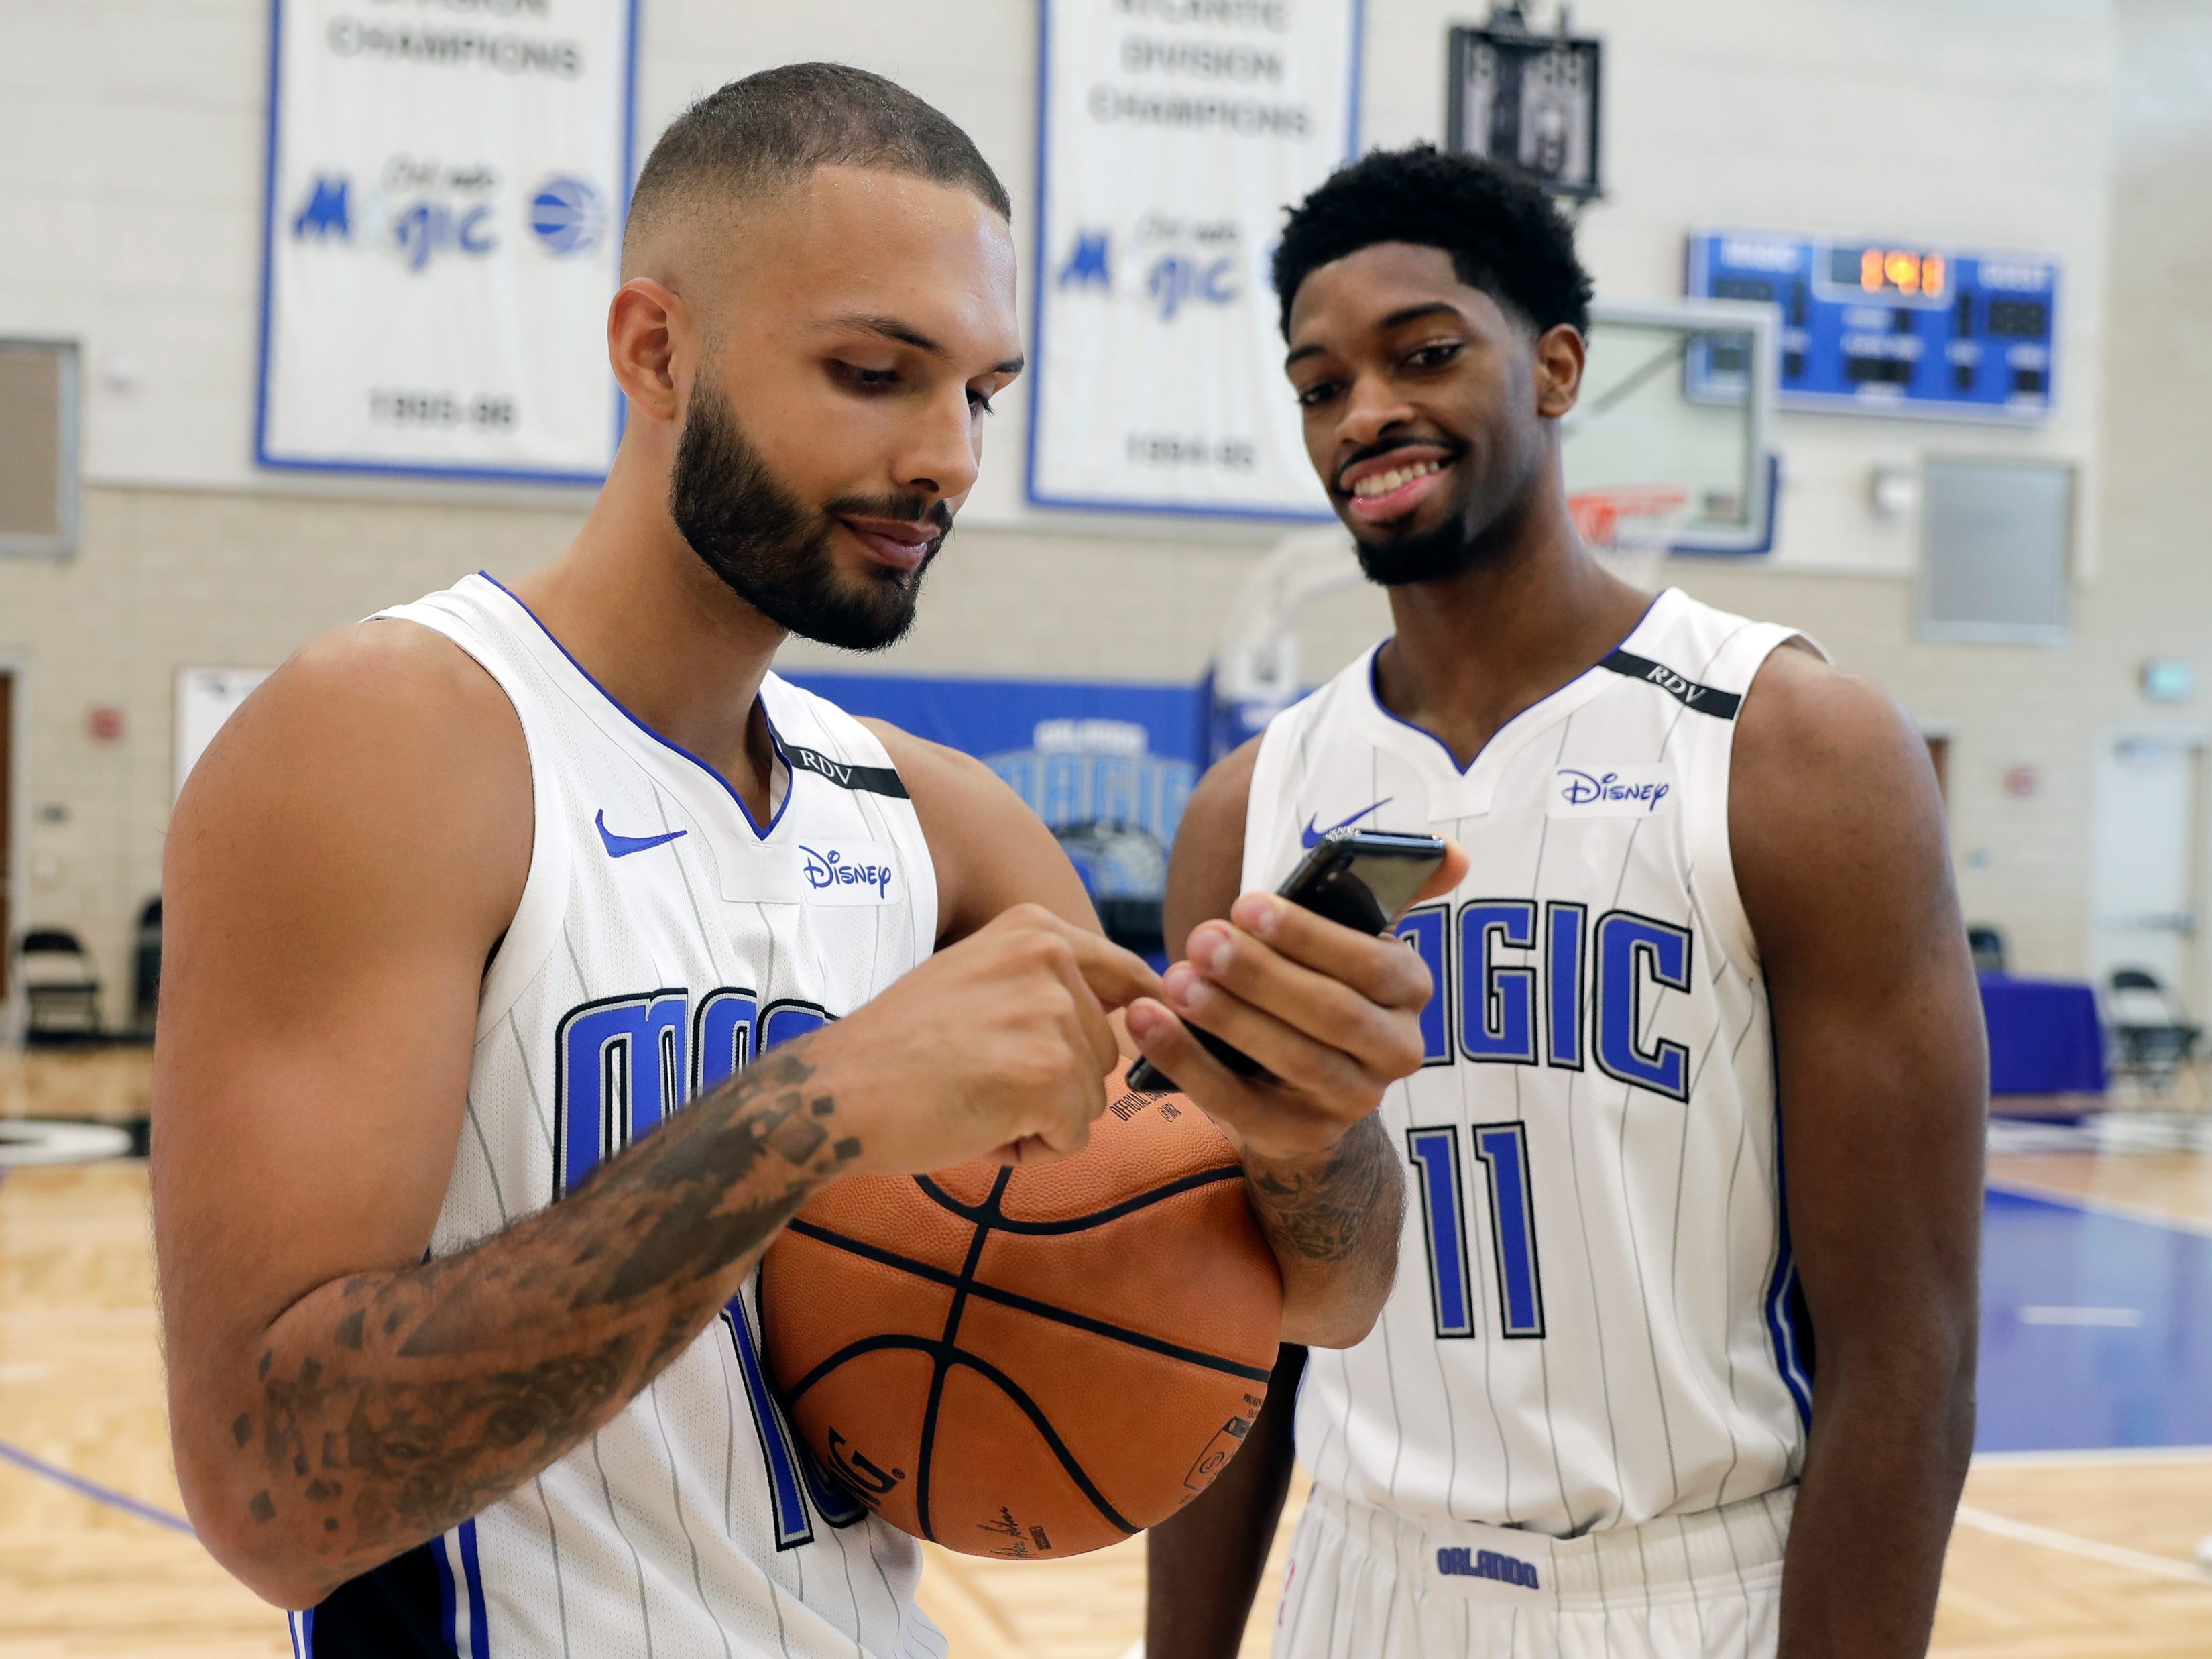 Orlando Magic's Evan Fournier, left, looks over some cell phone photos taken by teammate Amile Jefferson (11).